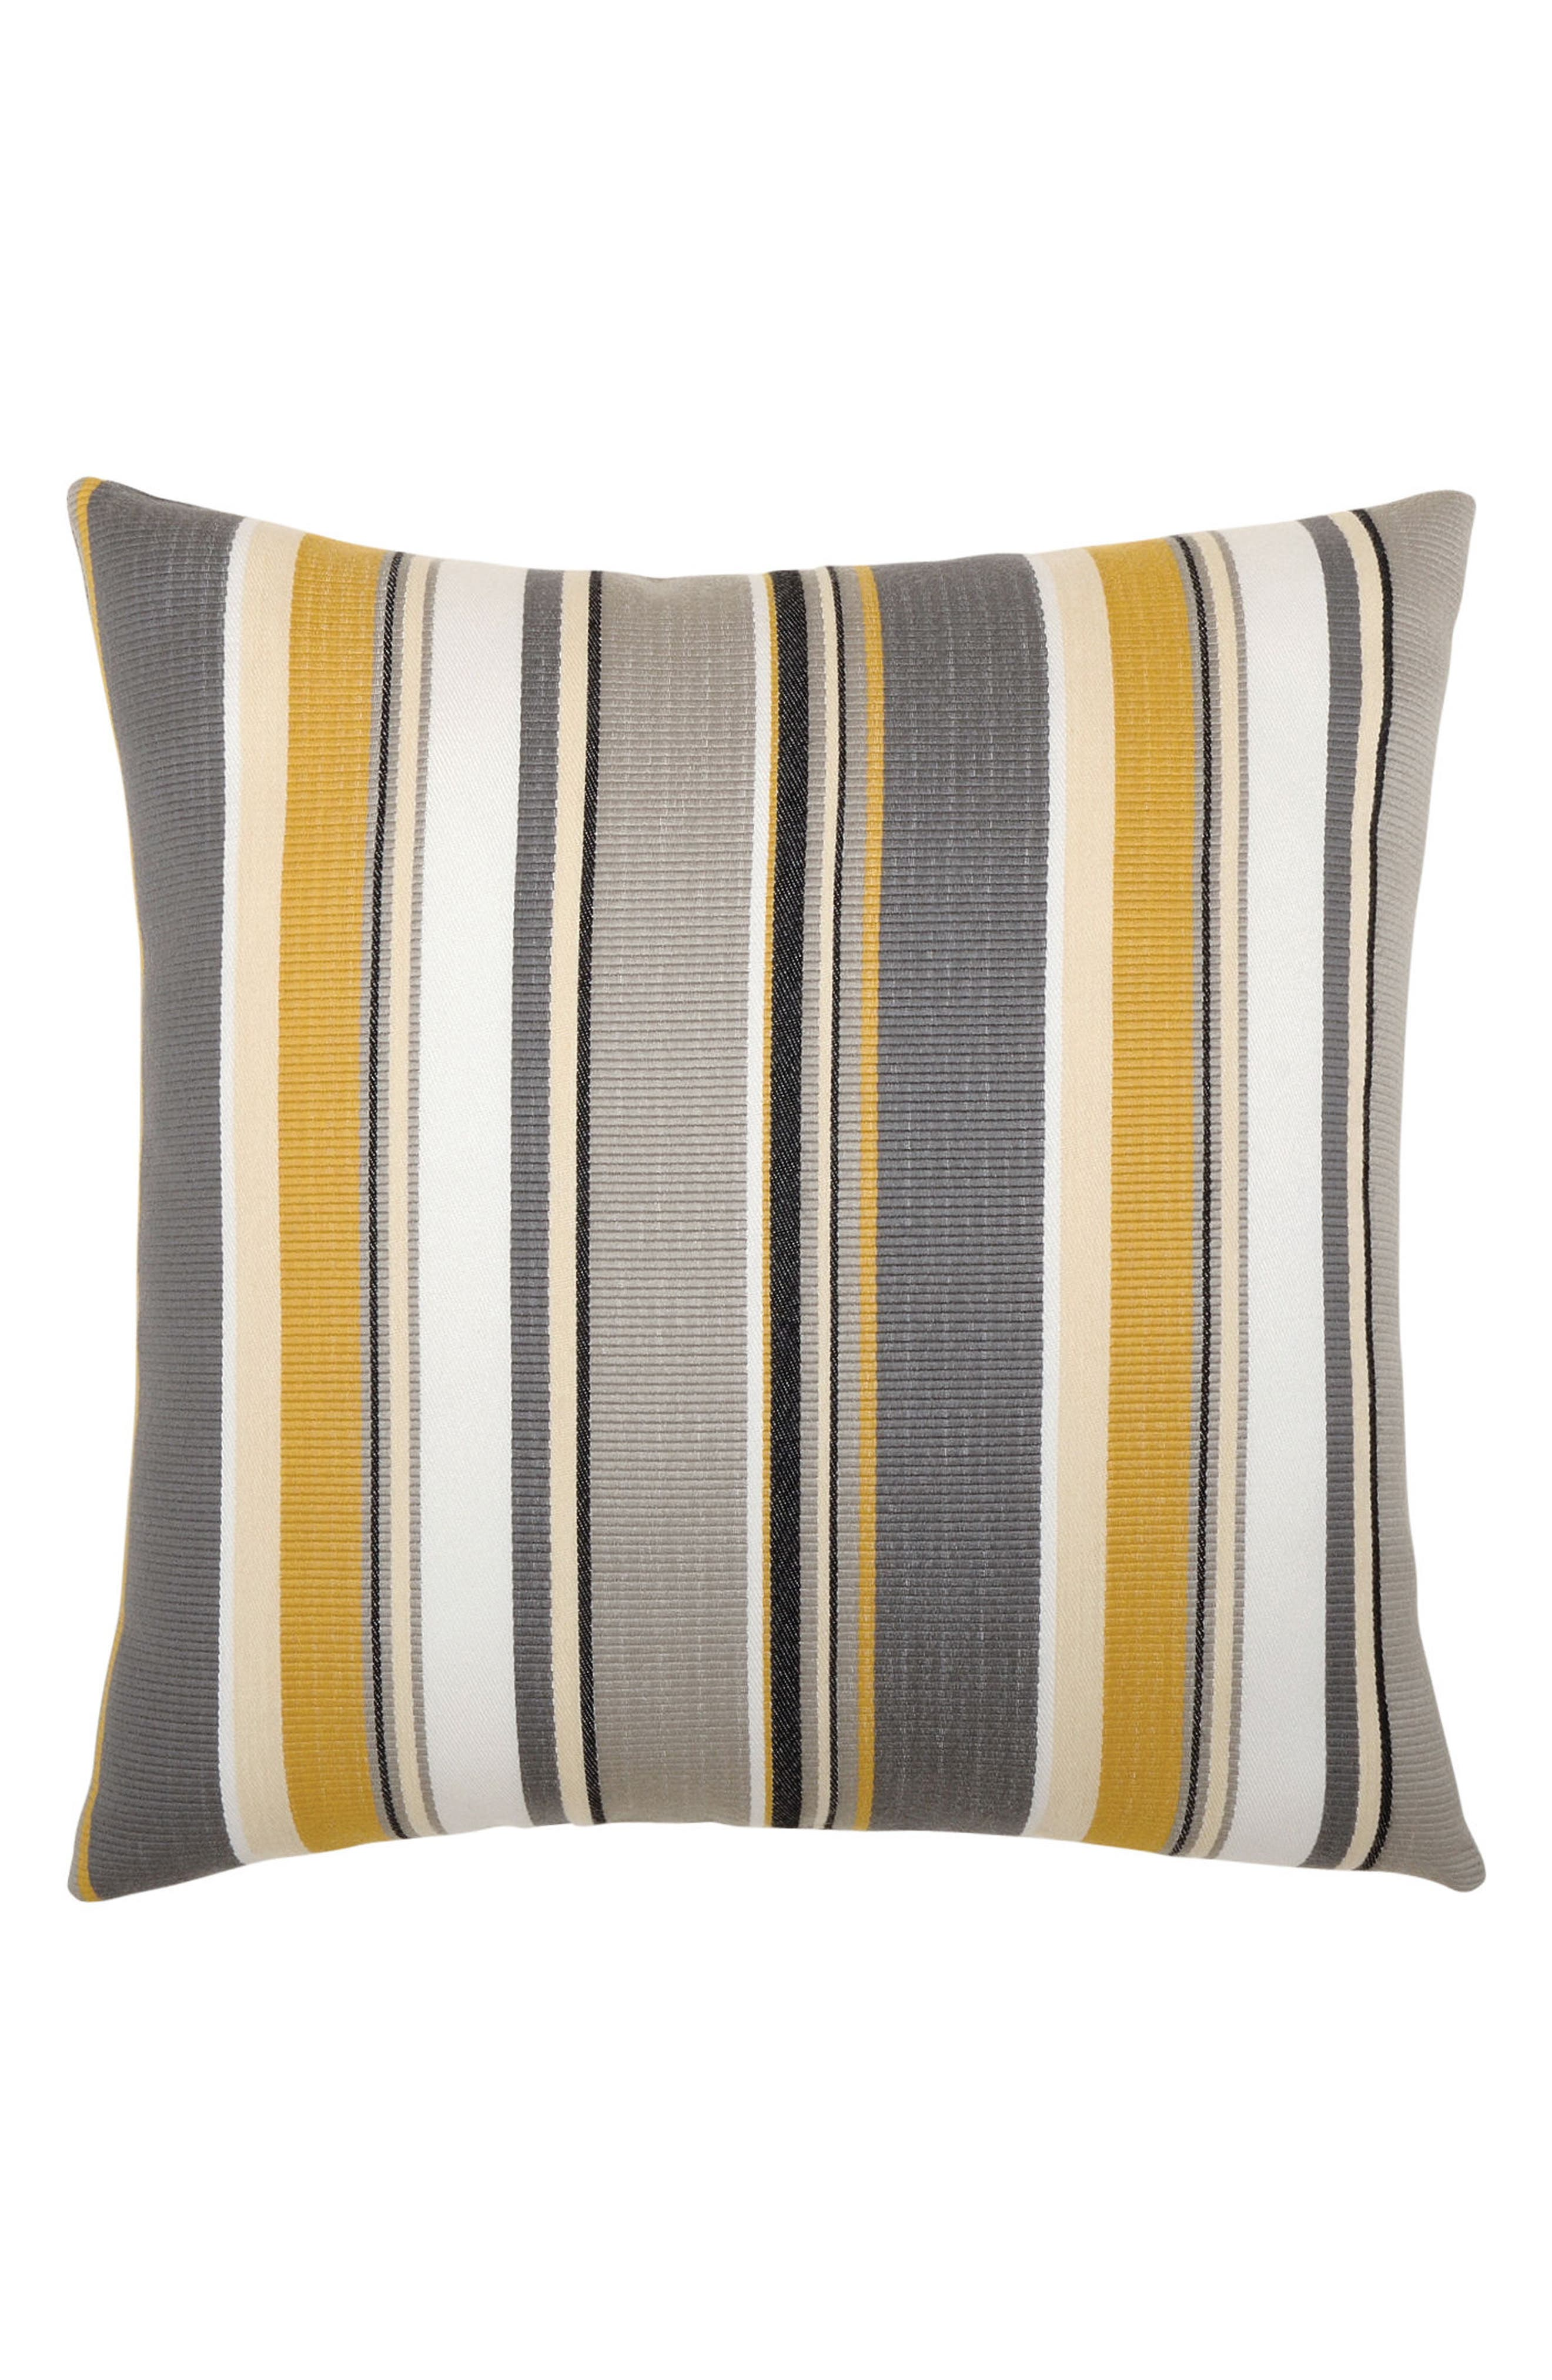 Shadow Stripe Indoor/Outdoor Accent Pillow,                         Main,                         color, Grey/ Gold